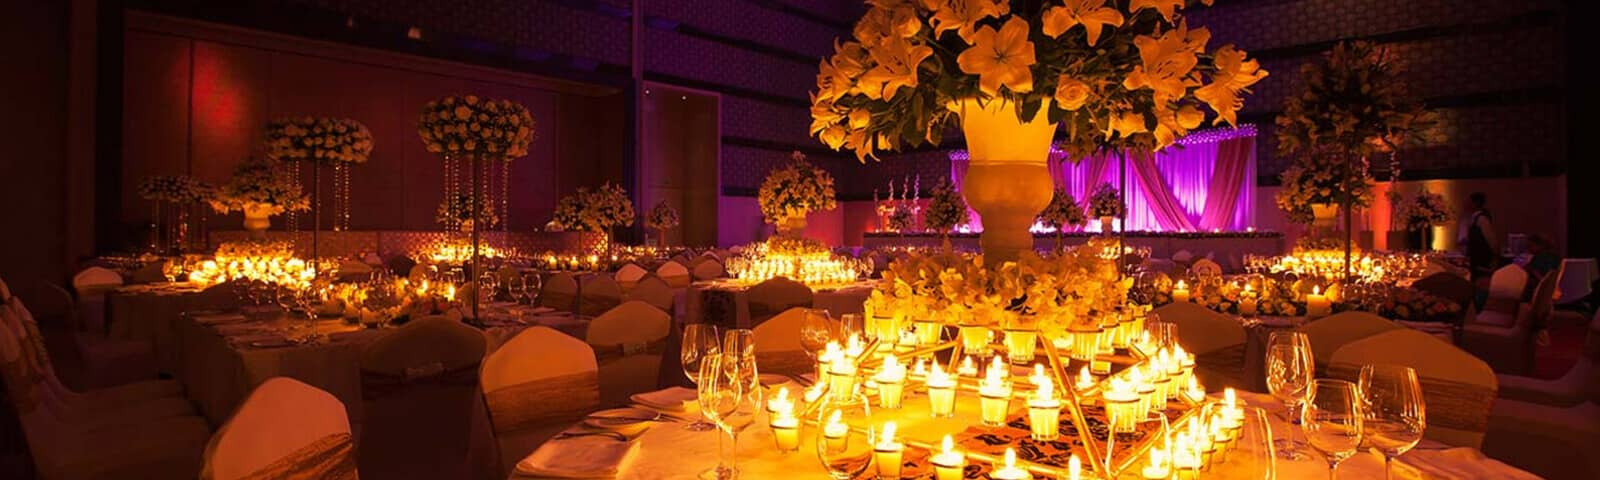 Wedding Planners In Bangalore Best Wedding Planners In Bangalore